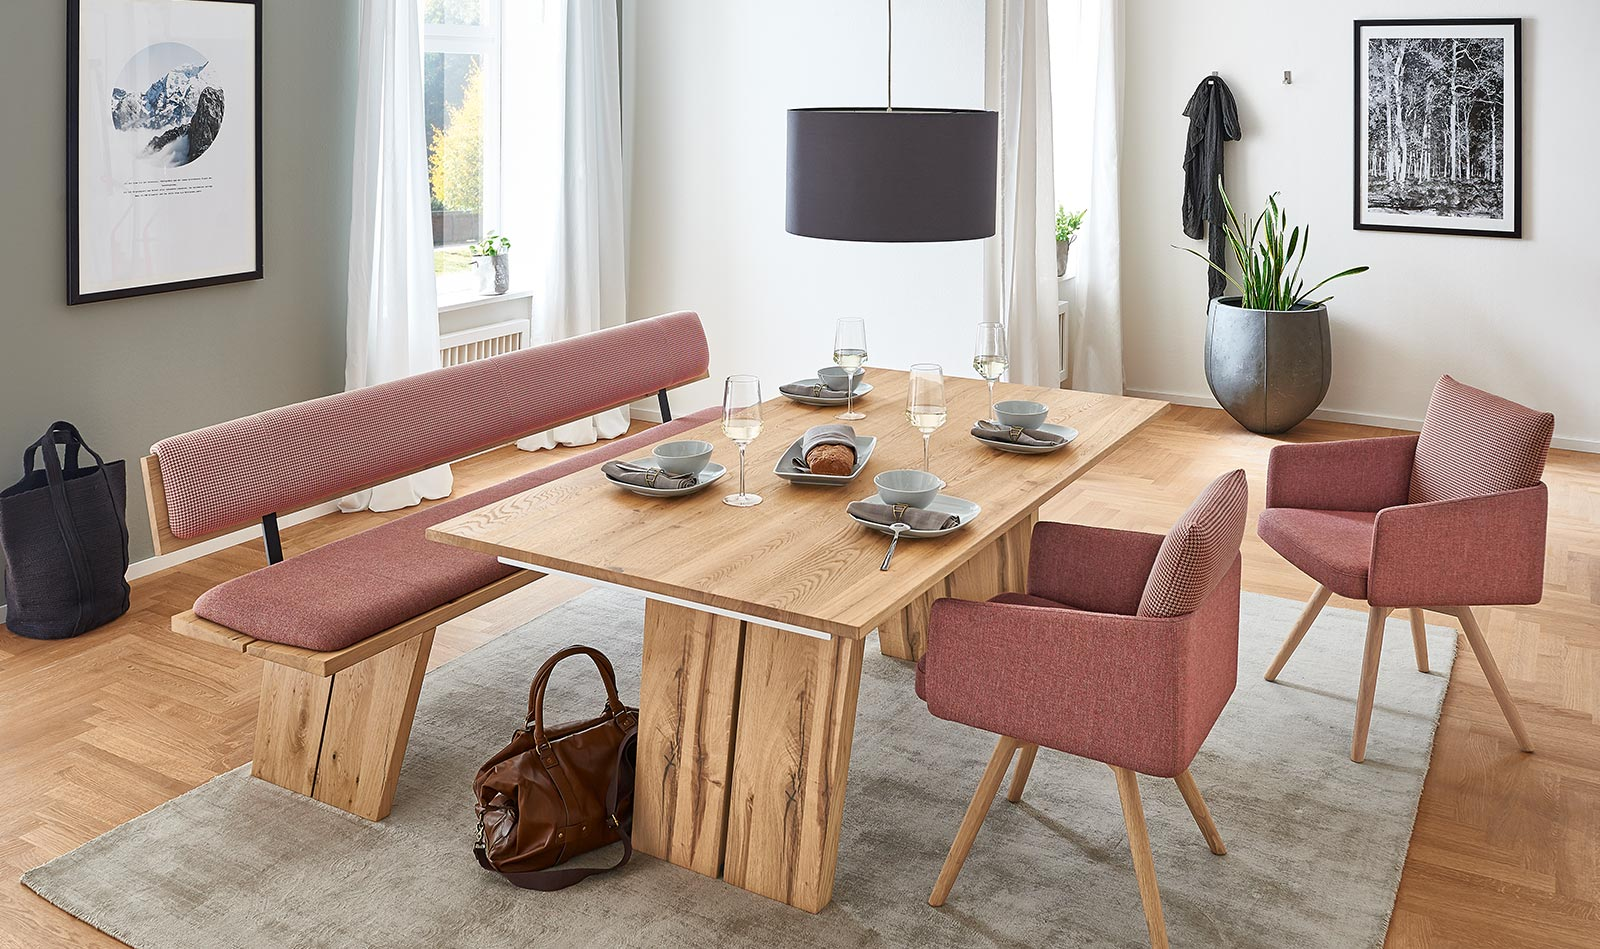 Moebel-as.de Dining Rooms Ranges Impuls Venjakob Möbel Vorsprung Durch